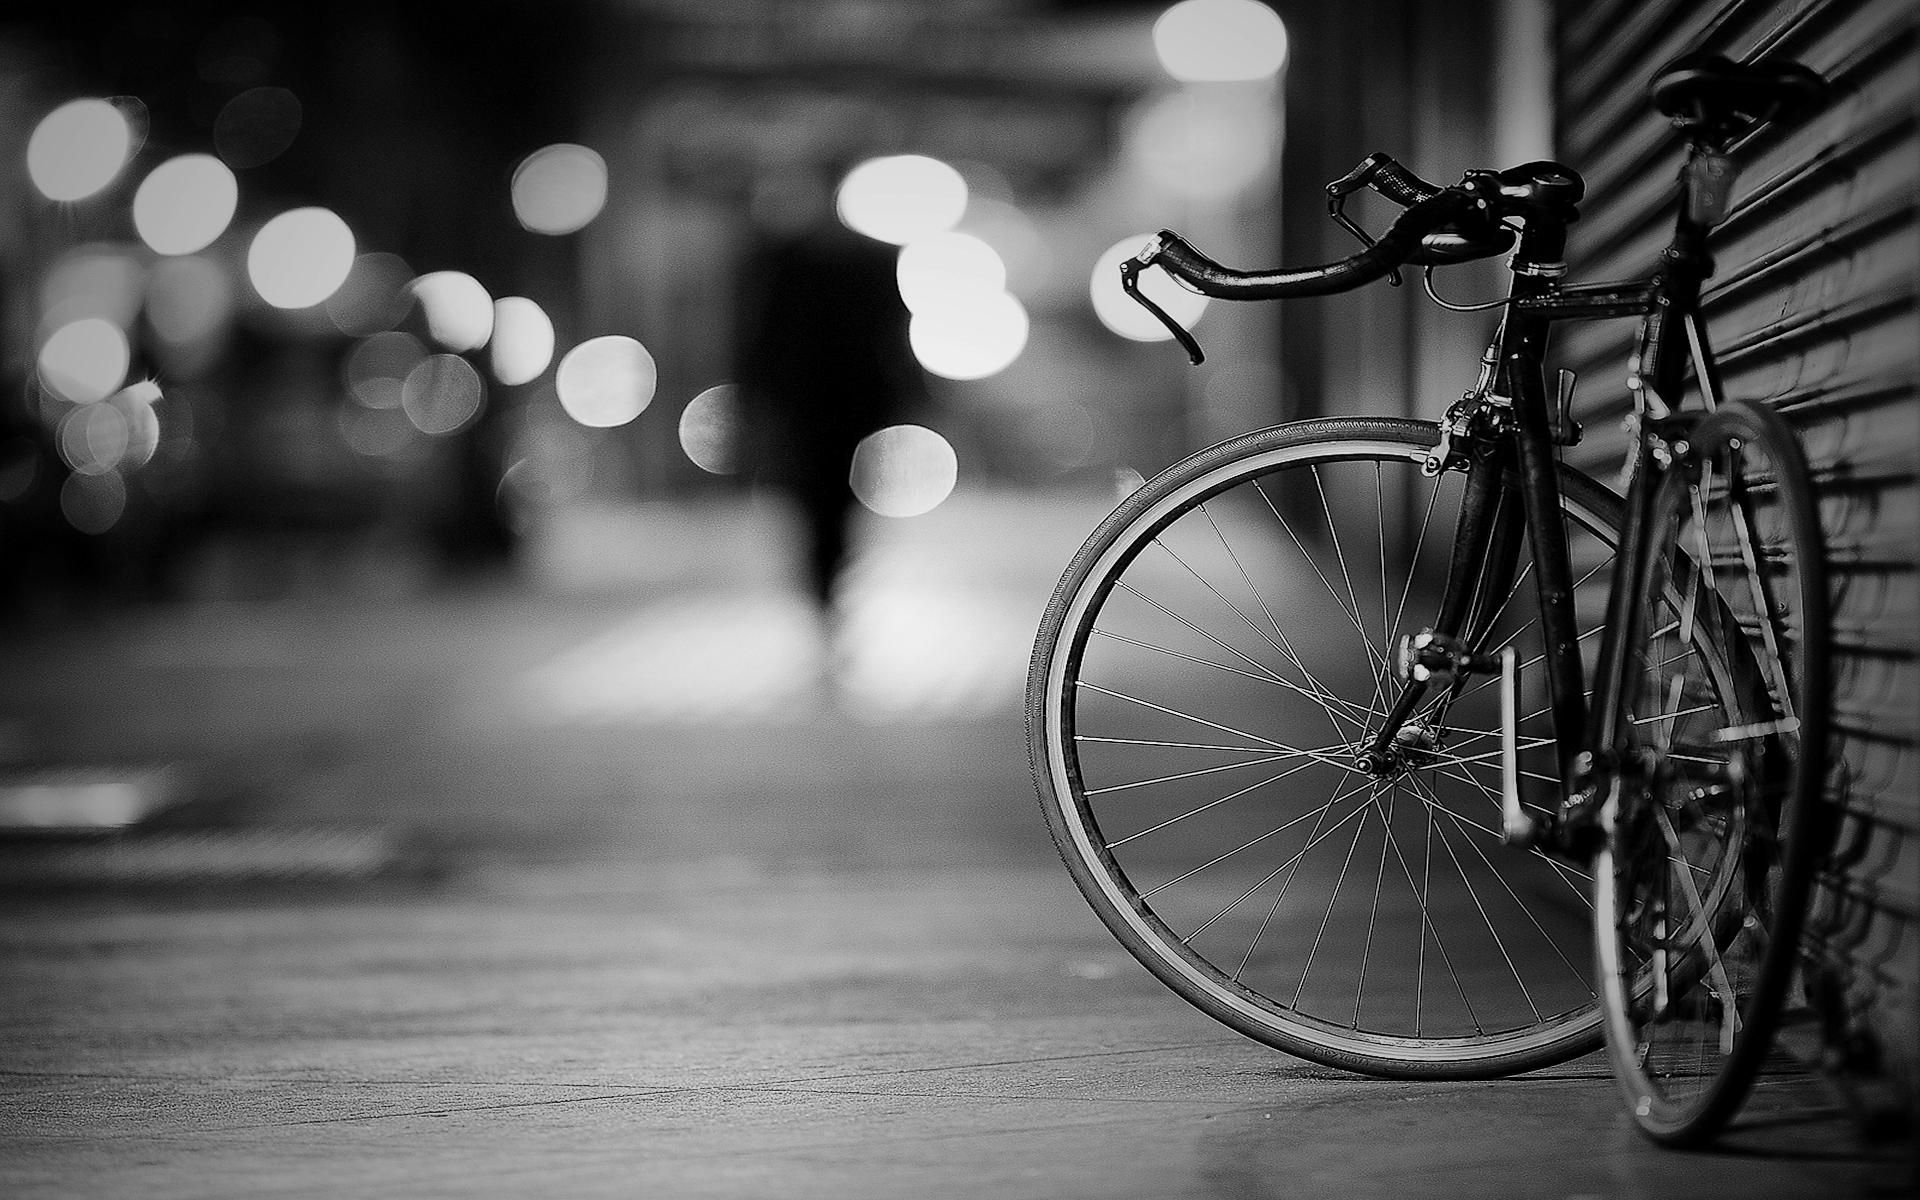 Pin By Tim Russ On Black White Hd Wallpapers For Laptop Bicycle Wallpaper Hd Wallpapers For Pc